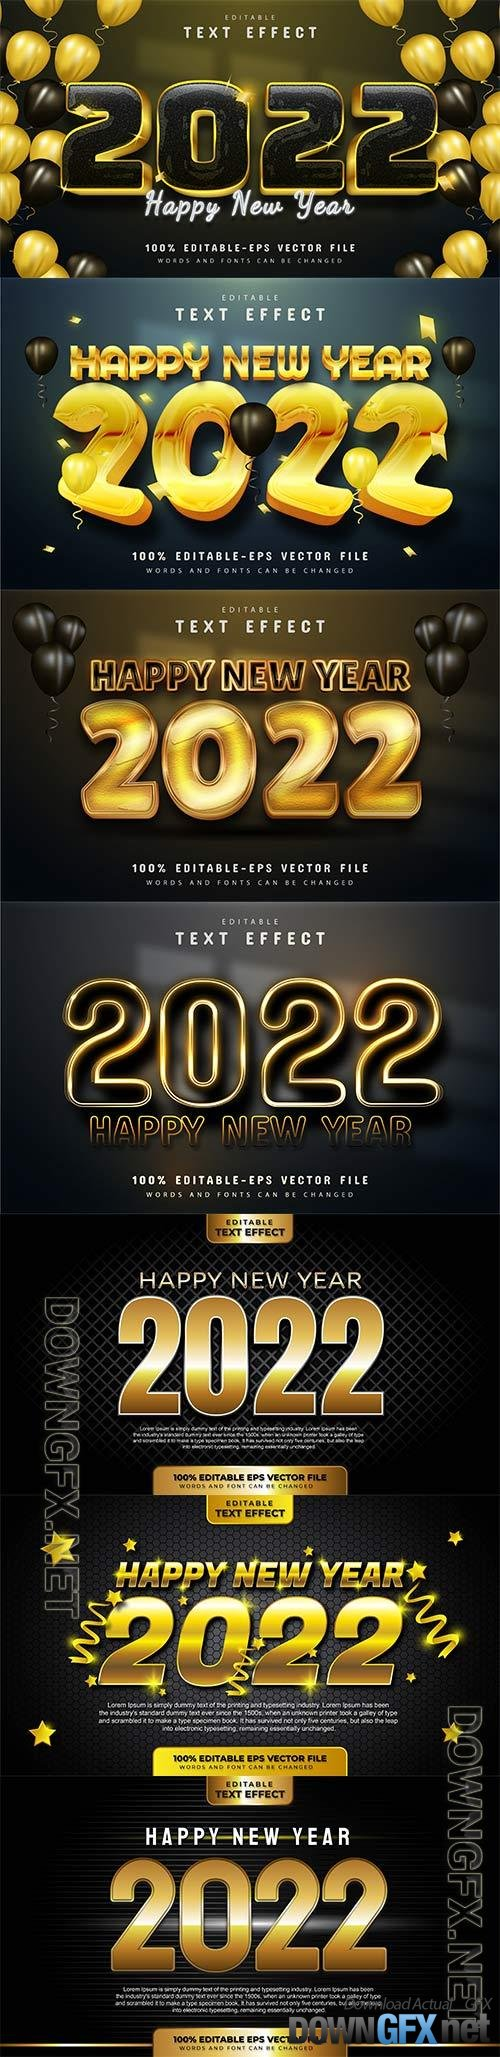 Happy new year 2022 gold 3d editable text effect premium vector